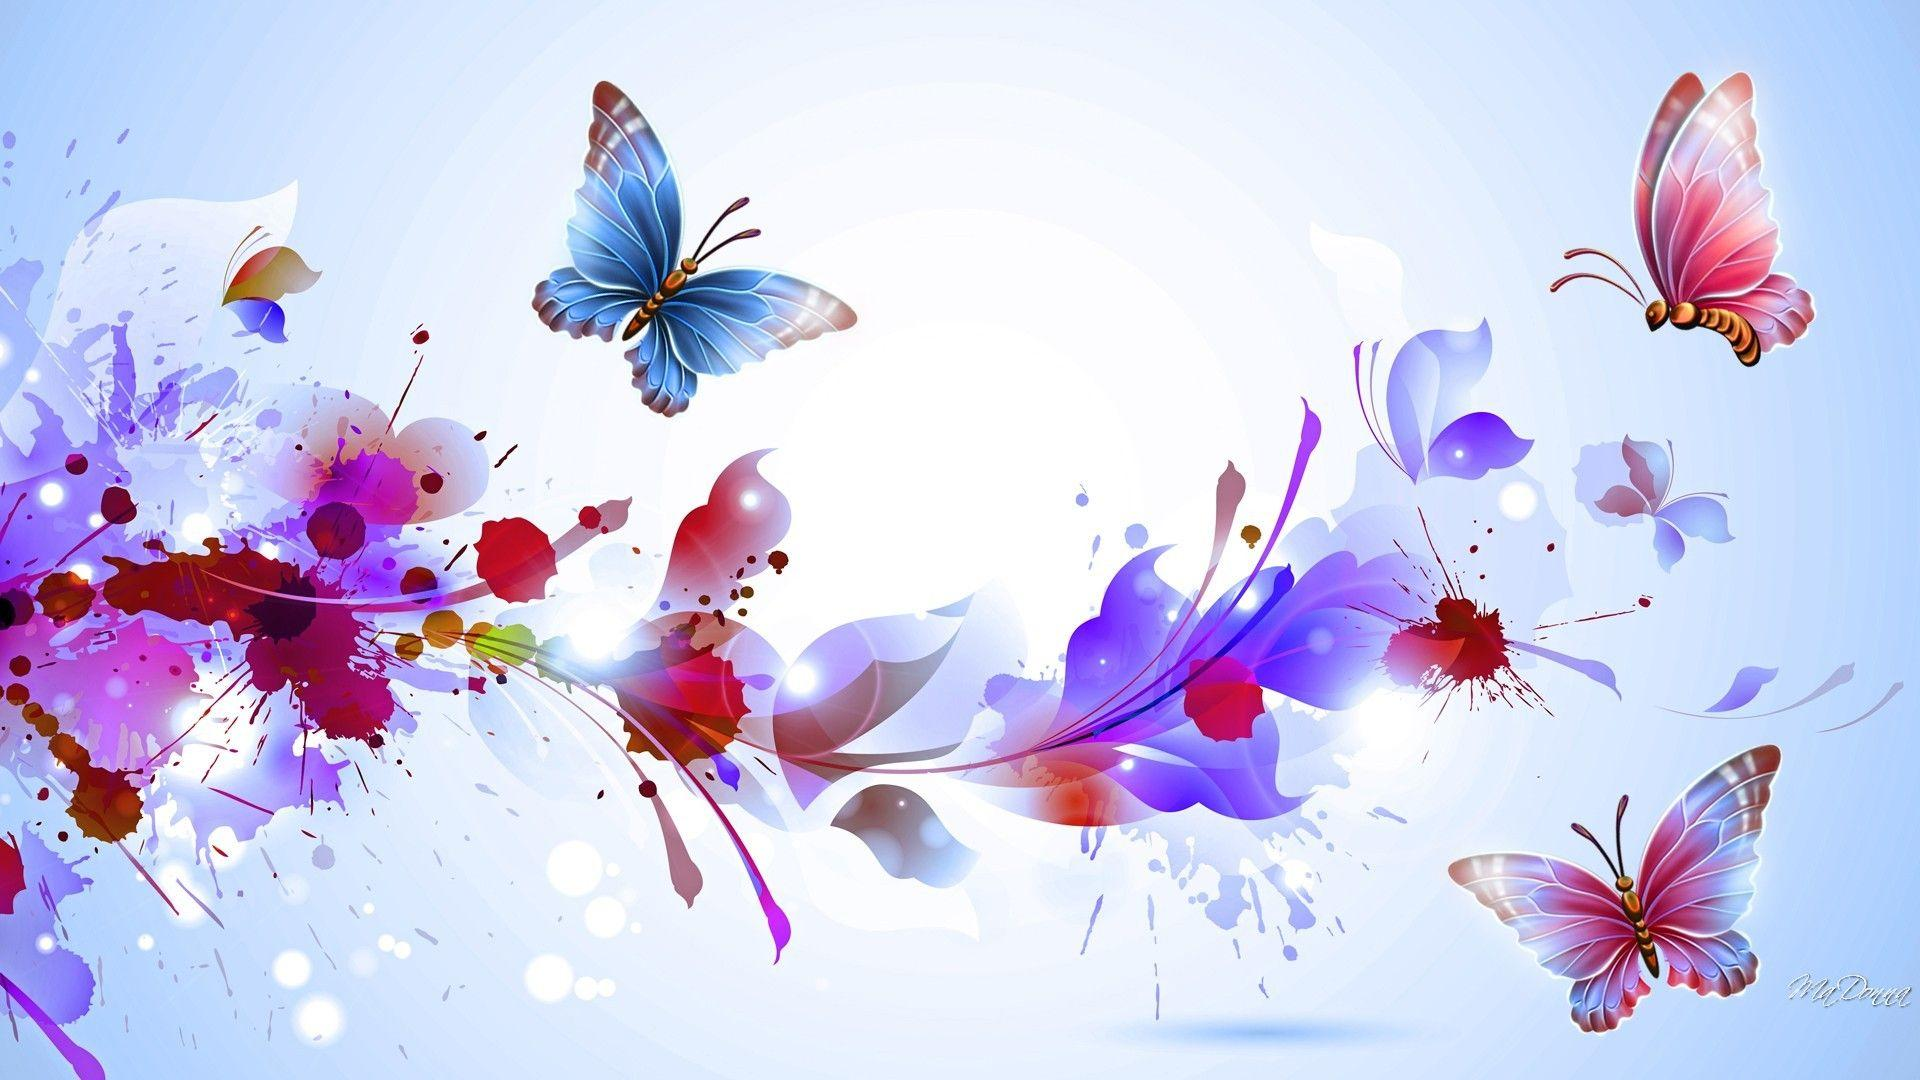 Abstract Flower Wallpapers - Wallpaper Cave